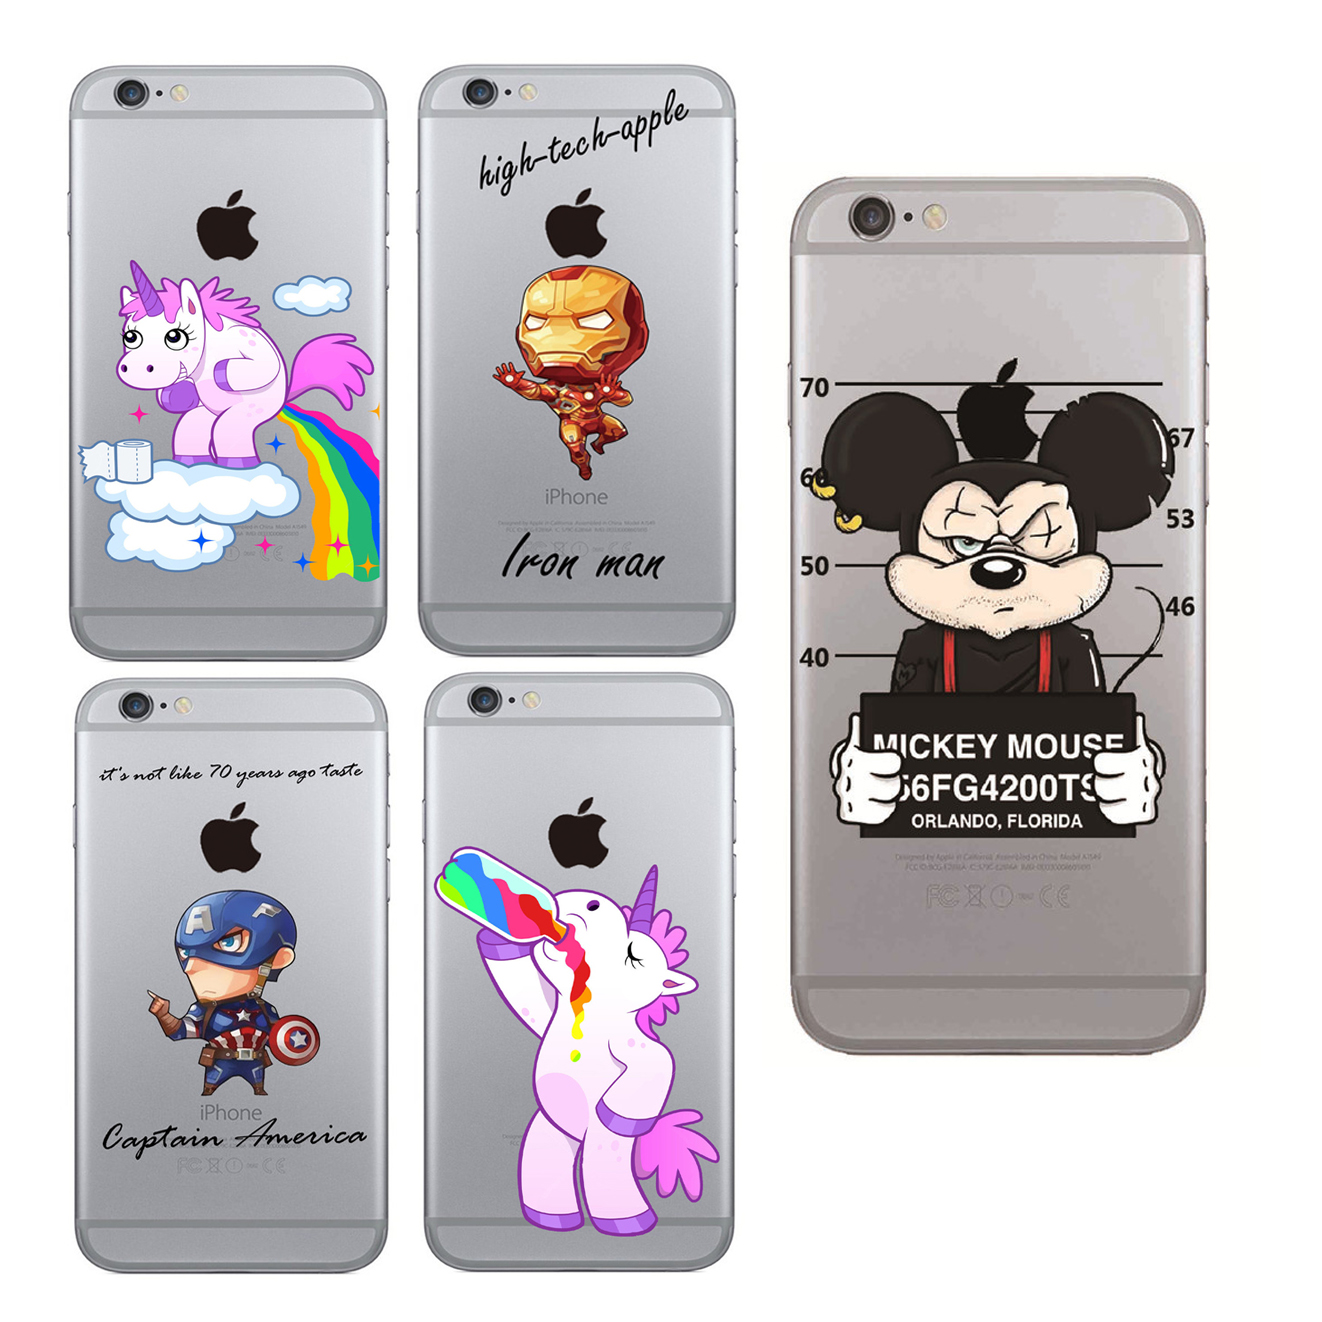 Case For iPhone 5 5s 6 6s Plus Cartoon Criminal Mickey Minnie Daisy Duck Unicorn Cover Soft TPU Phone Cases Coque Capa Fundas